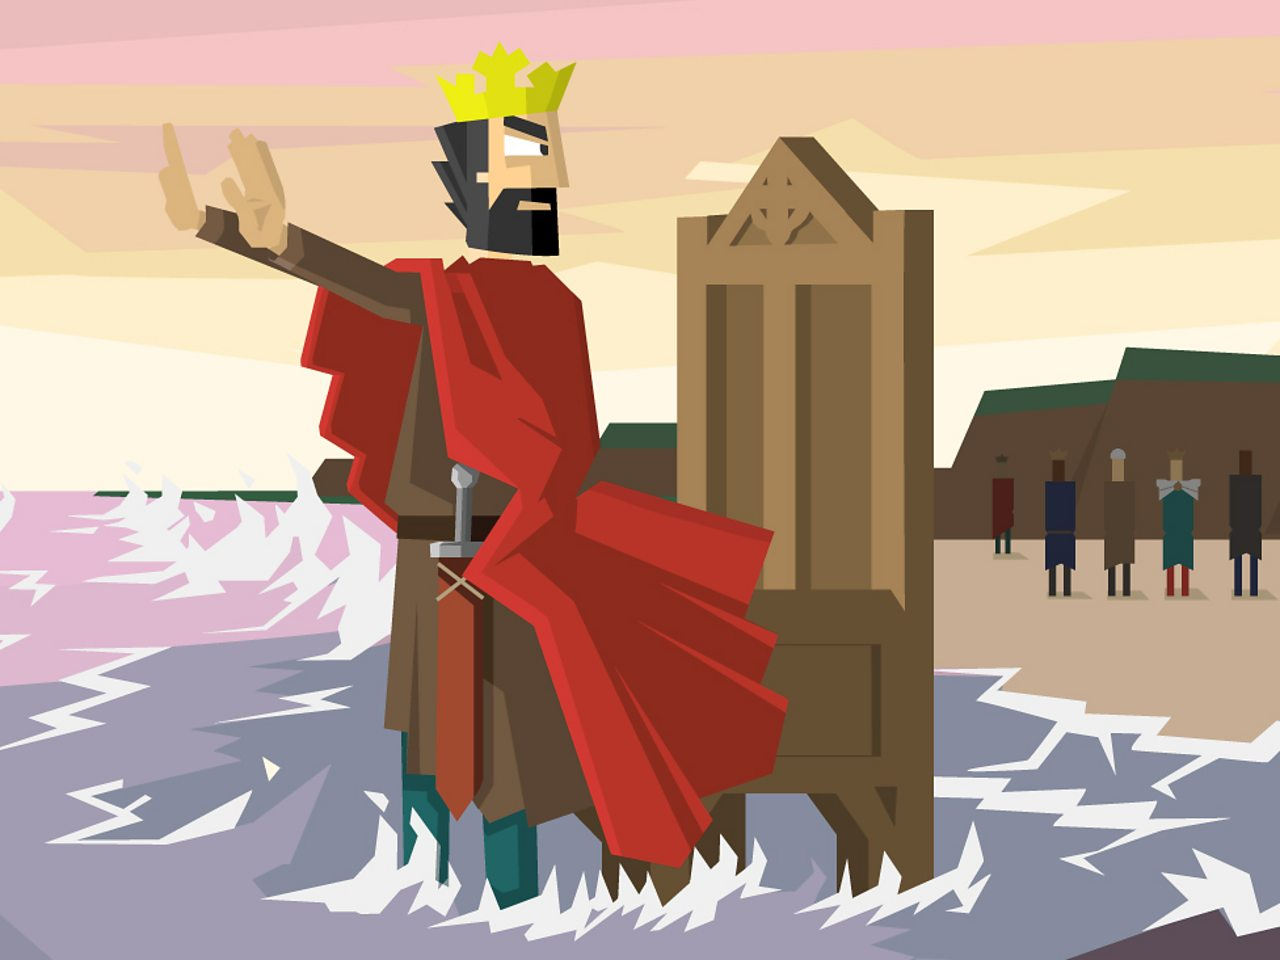 King Cnut (Canute) standing on a beach holding out his hands to the tide